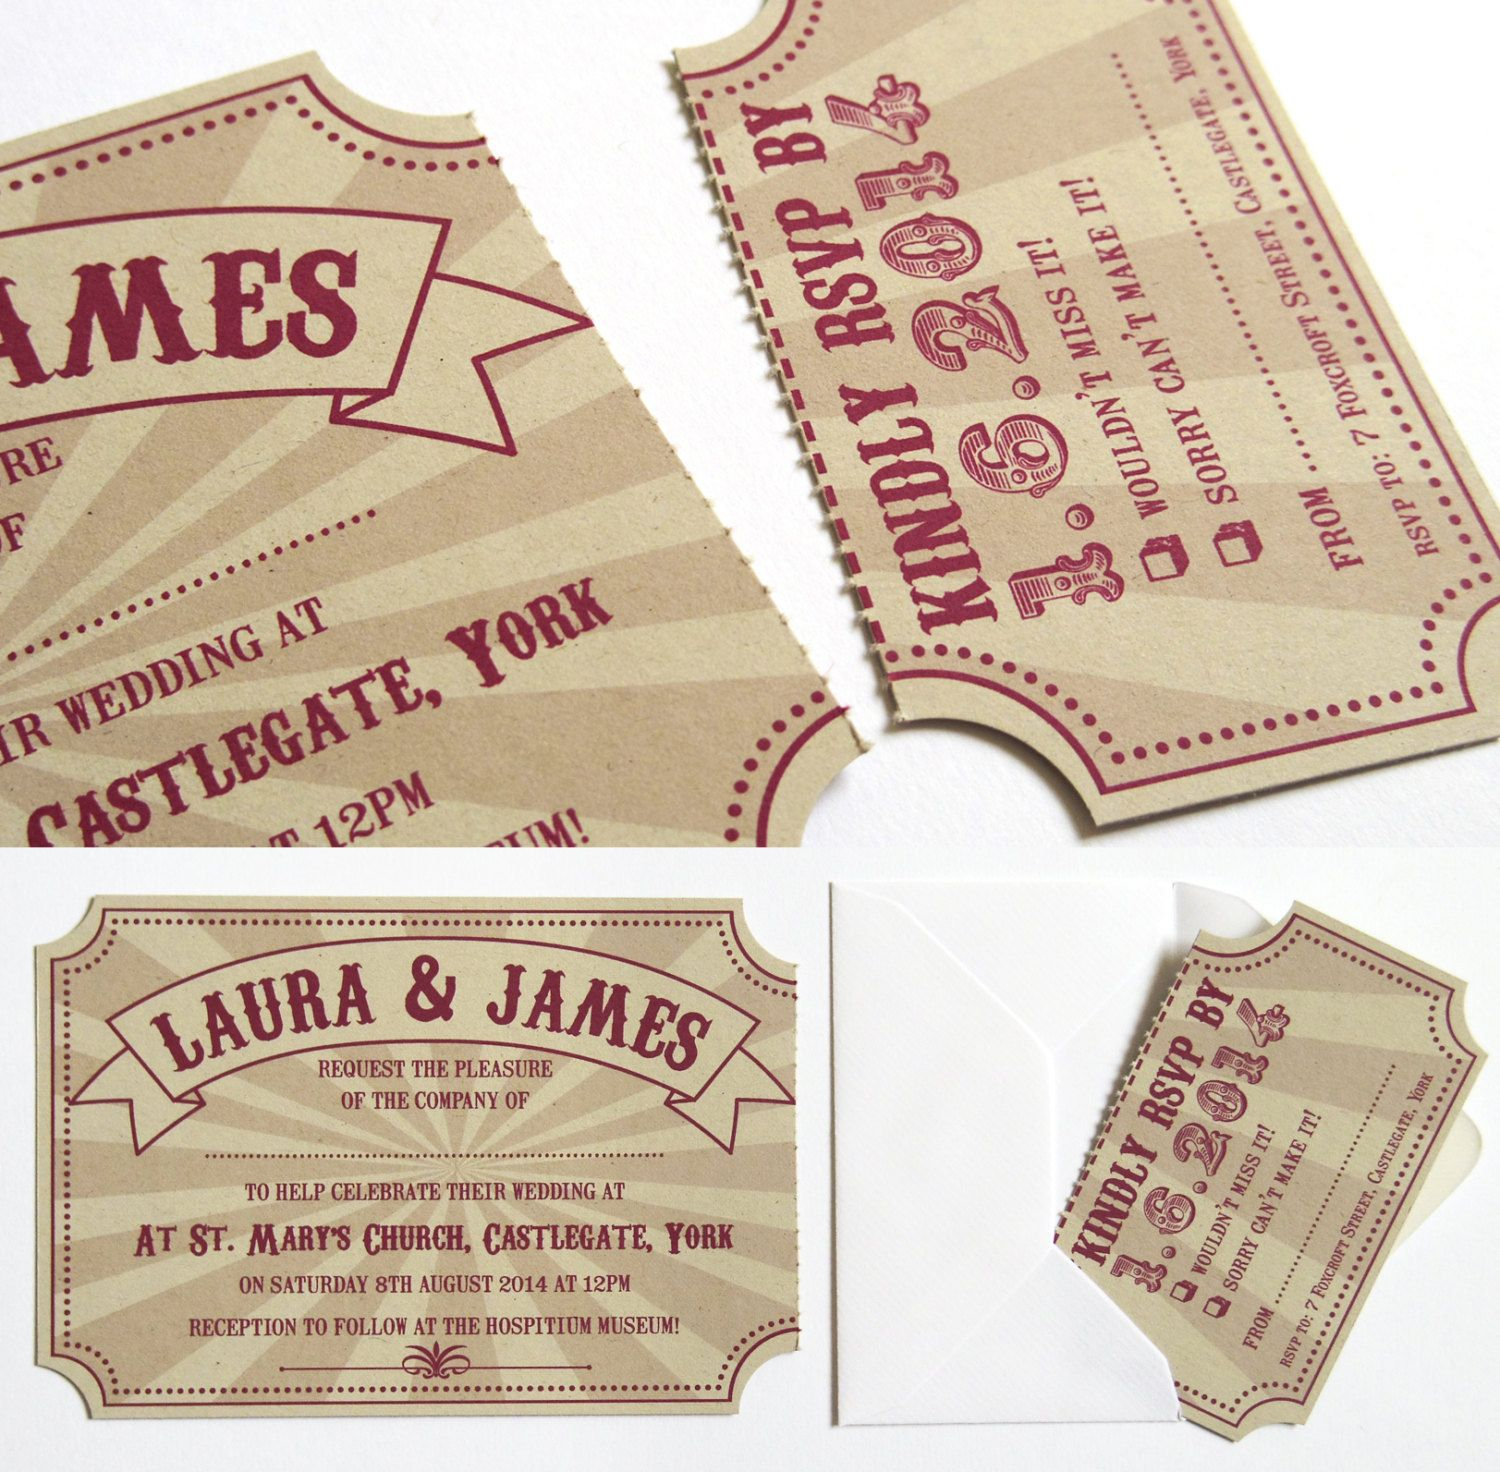 Circus Ticket Wedding Invitation Fun Fair Carnival the invite